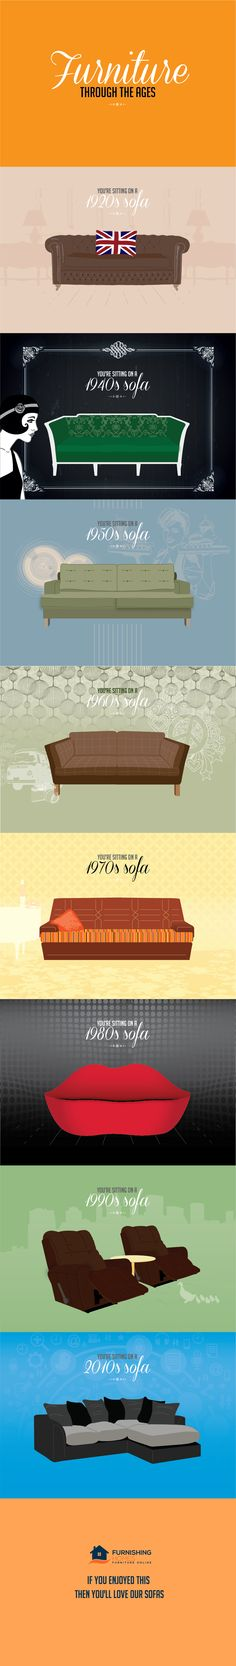 Furniture Design Through The Ages the history of furniture | wordy infographics that explains